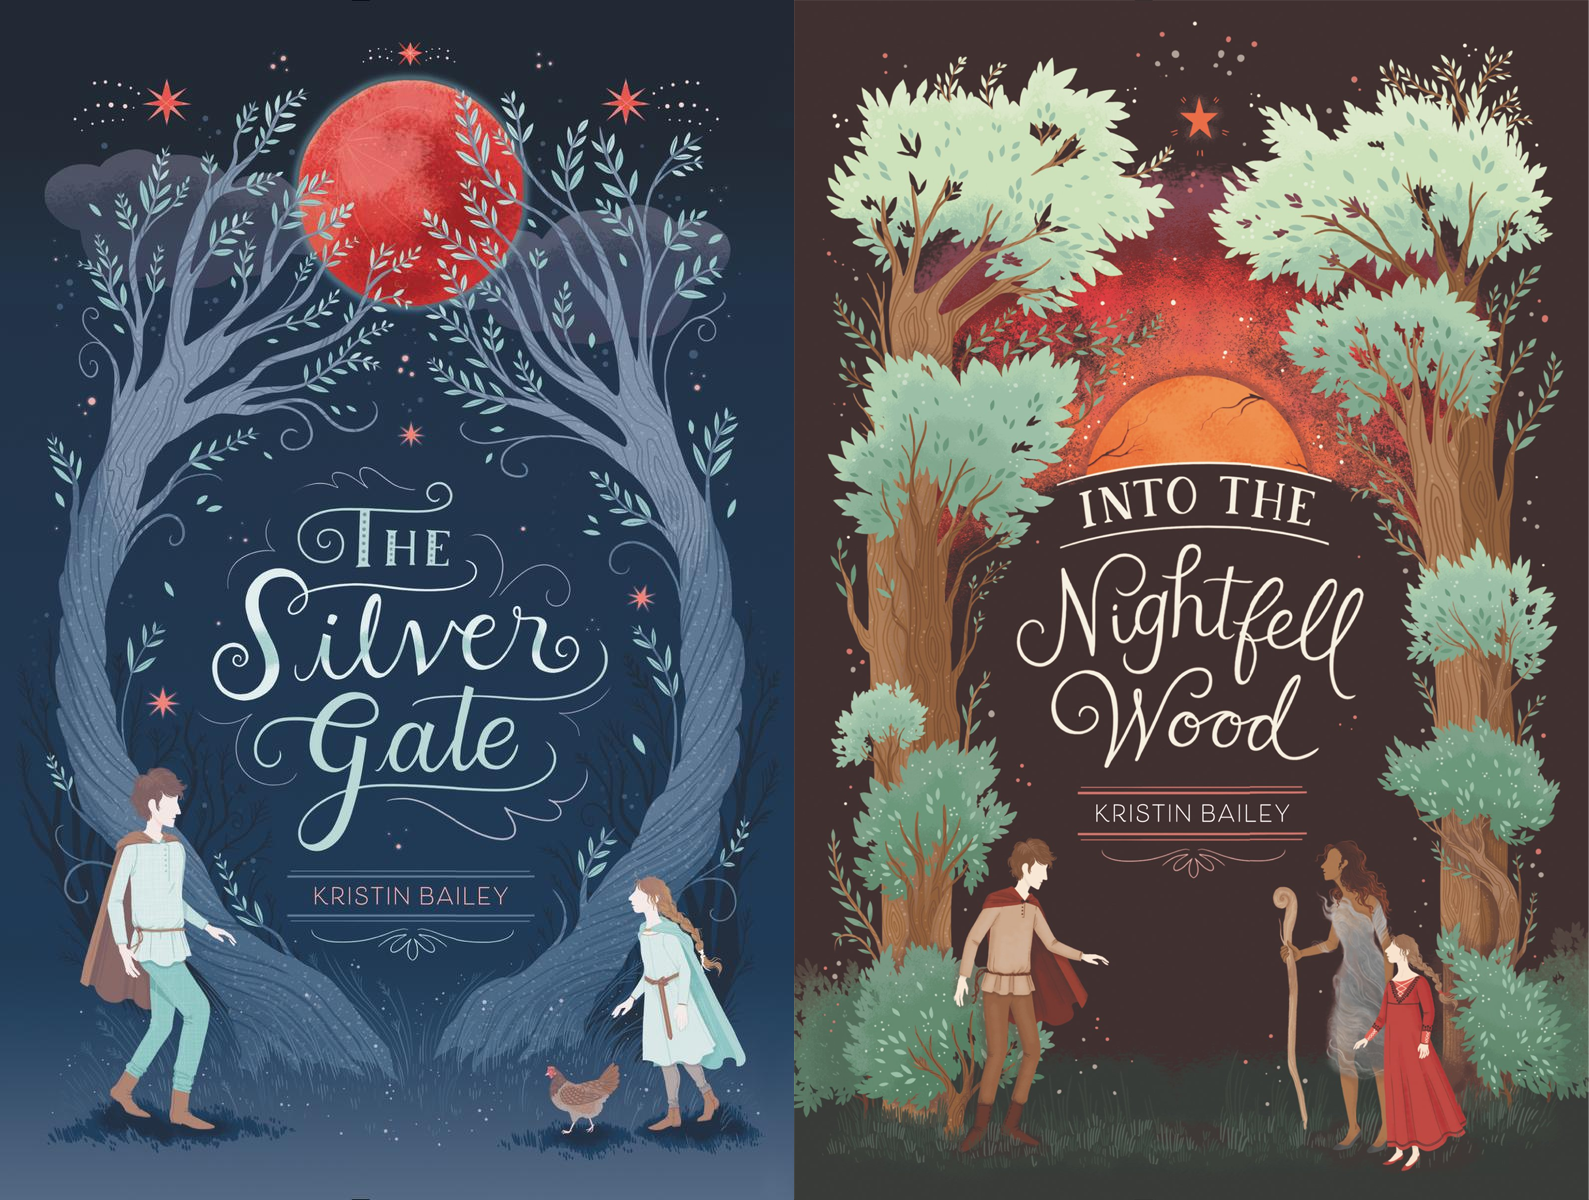 407 best pretty books images on pinterest the silver gate and into the nightfell wood by kristin bailey art by lisa perrin fandeluxe Choice Image